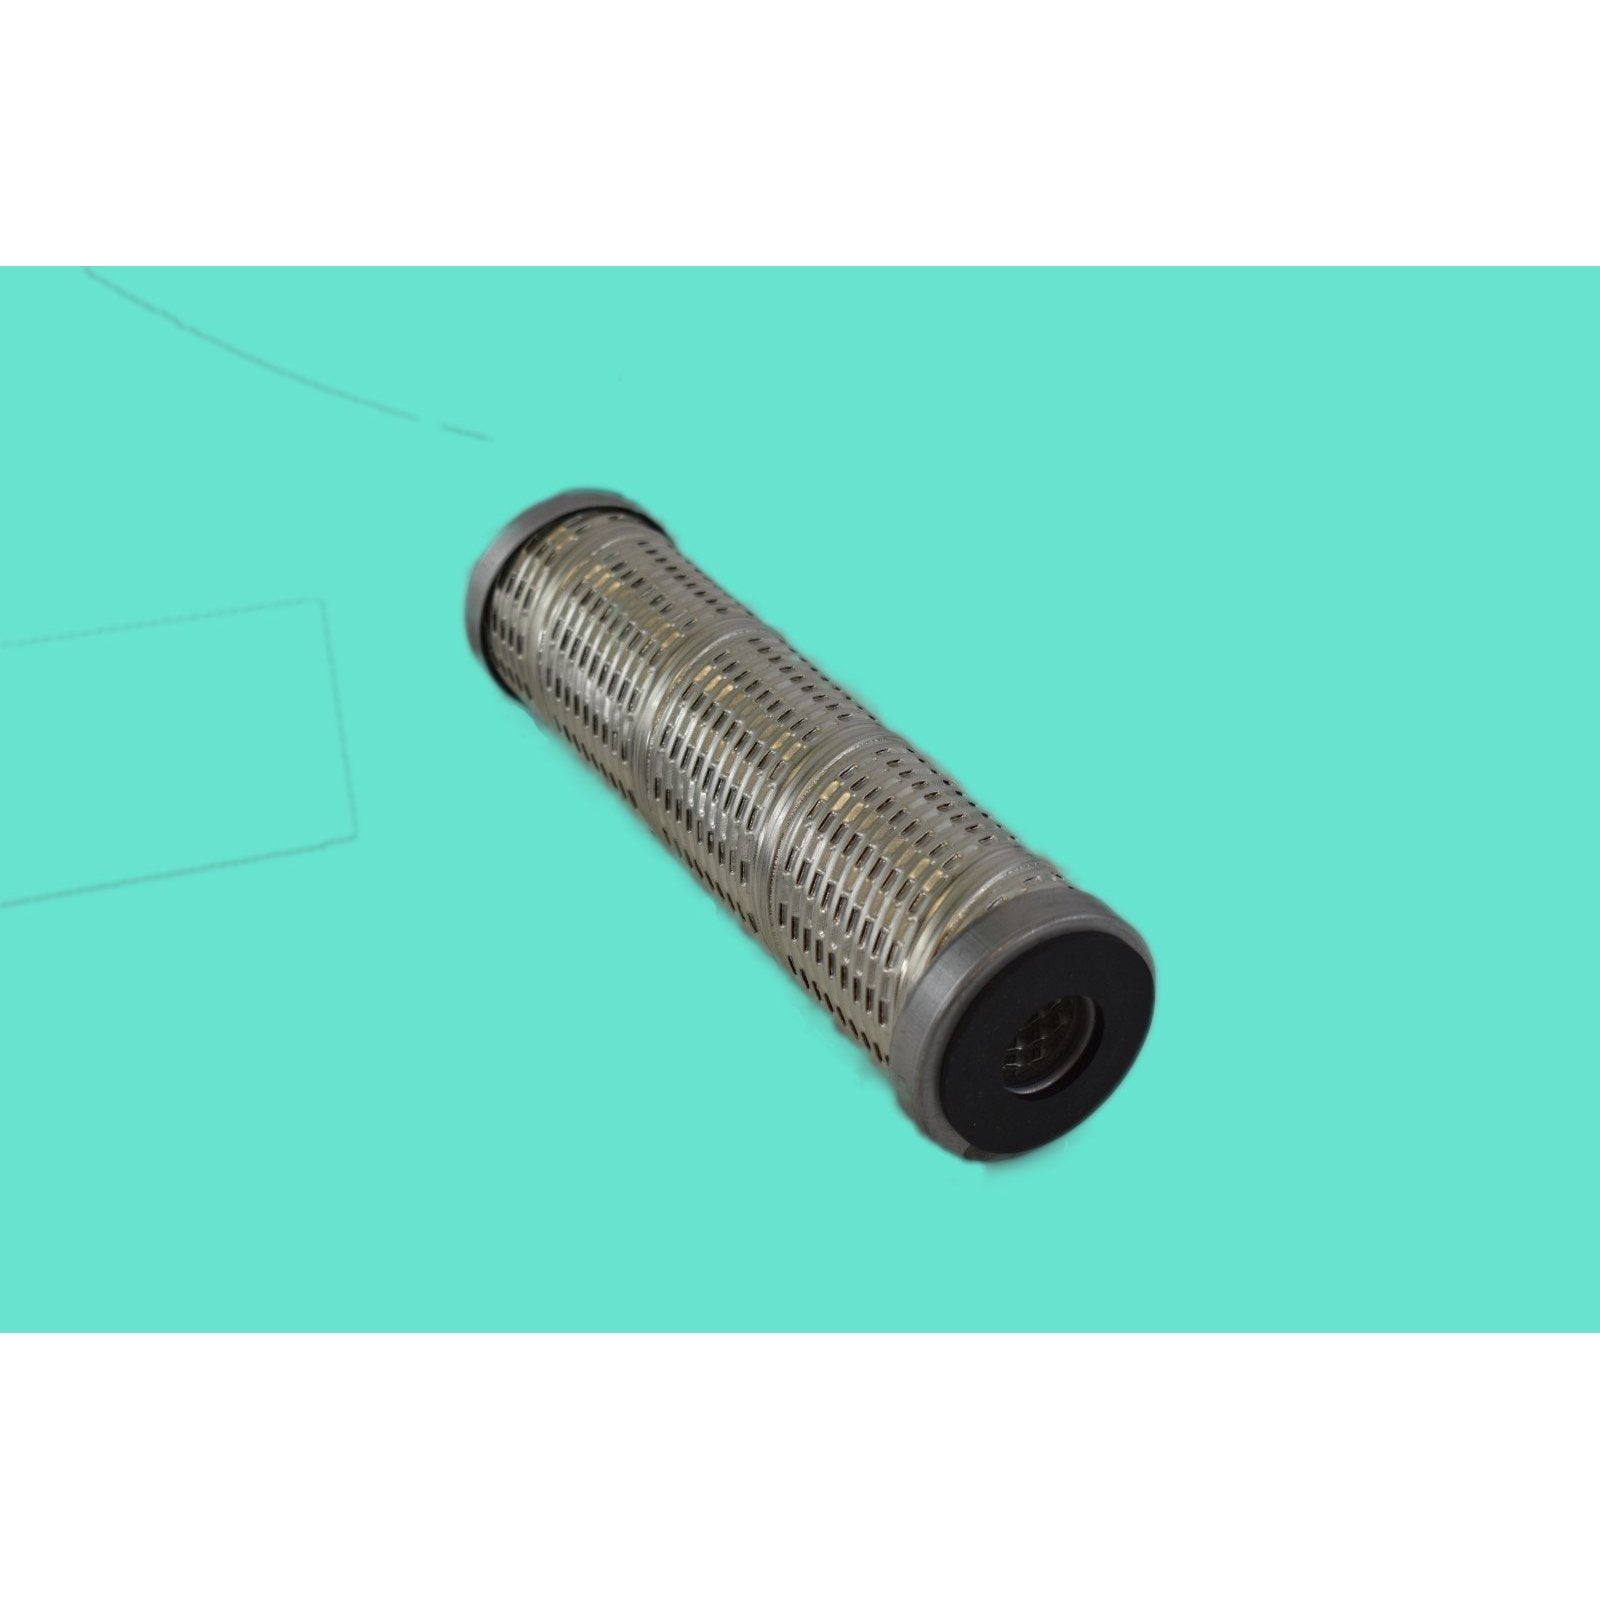 GRESEN K-22001 Replacement Filter by Mission Filter